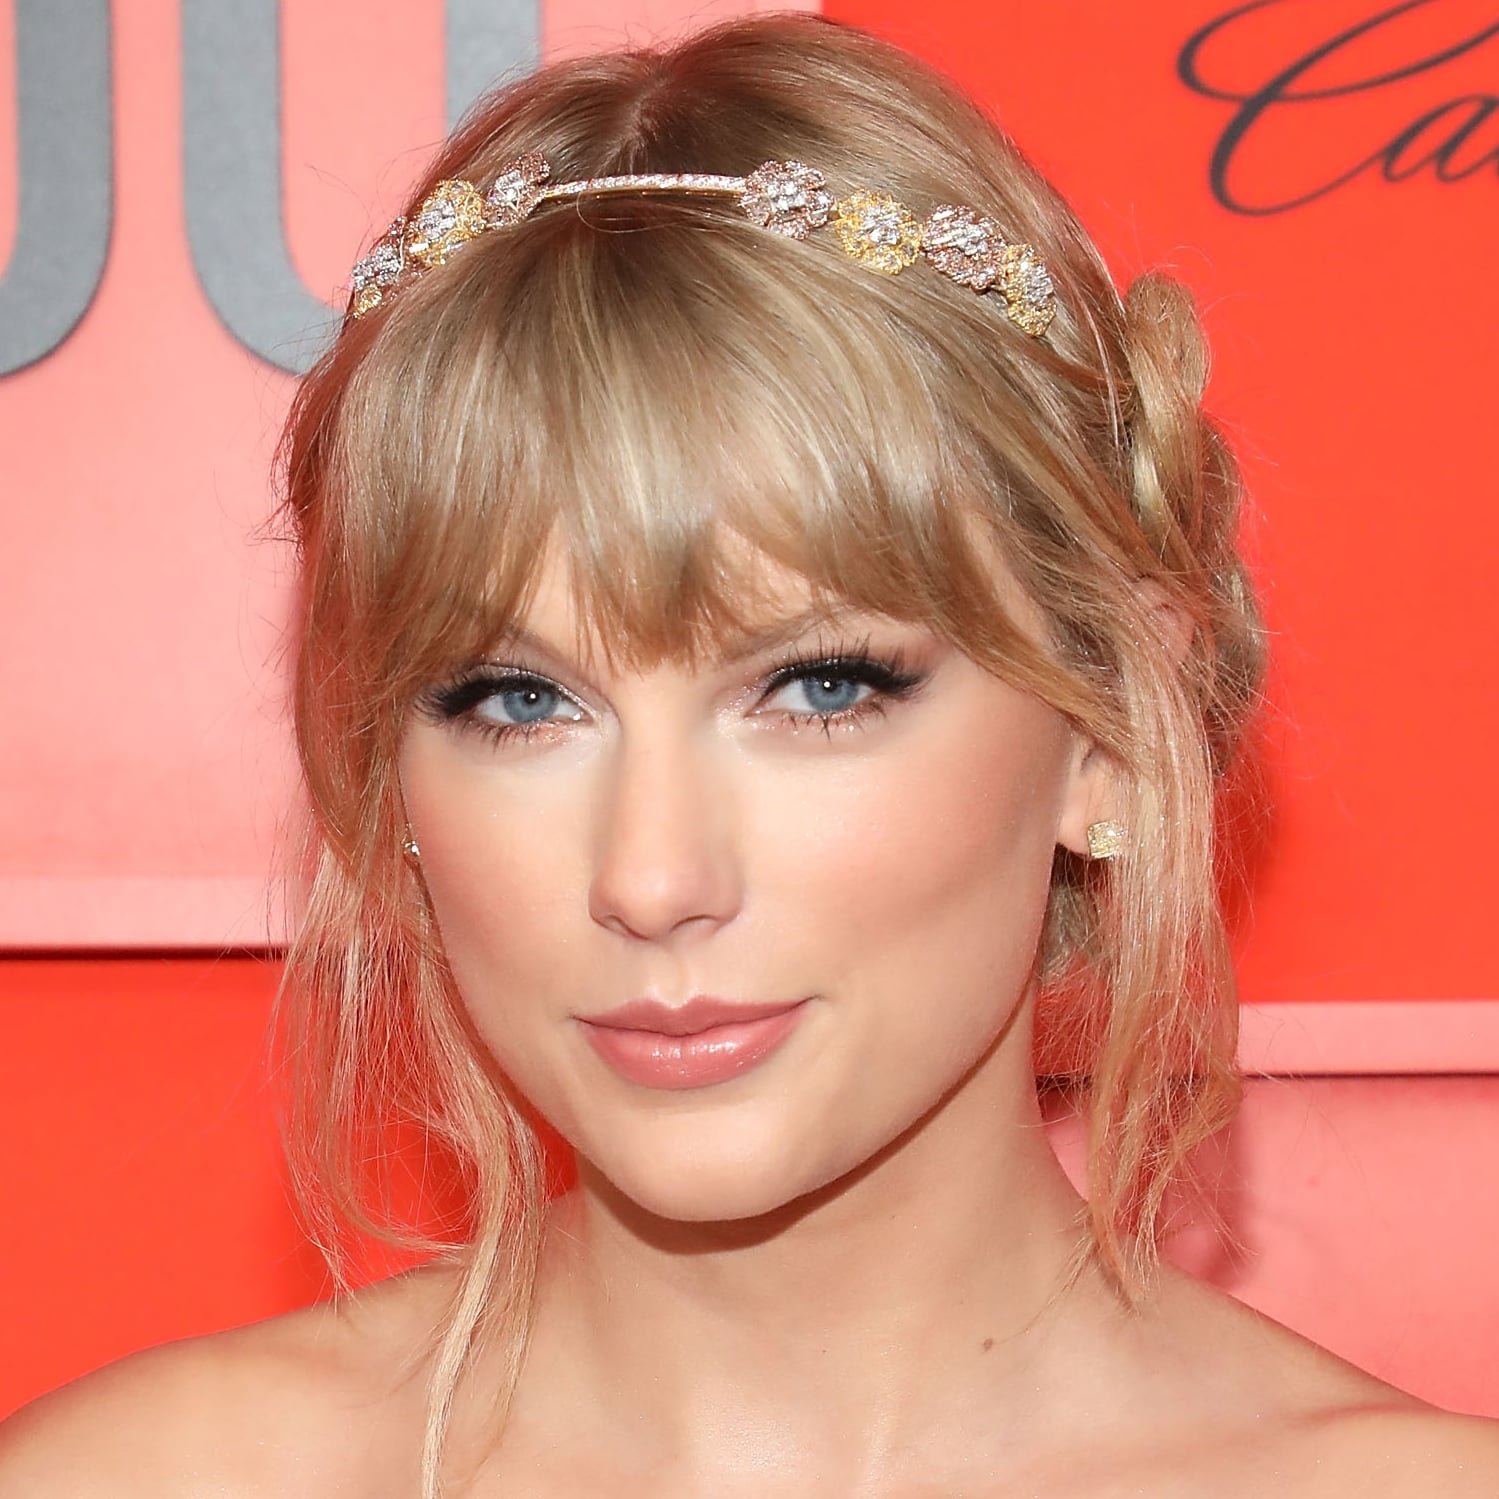 When Can Taylor Swift Re-Record Her Albums?